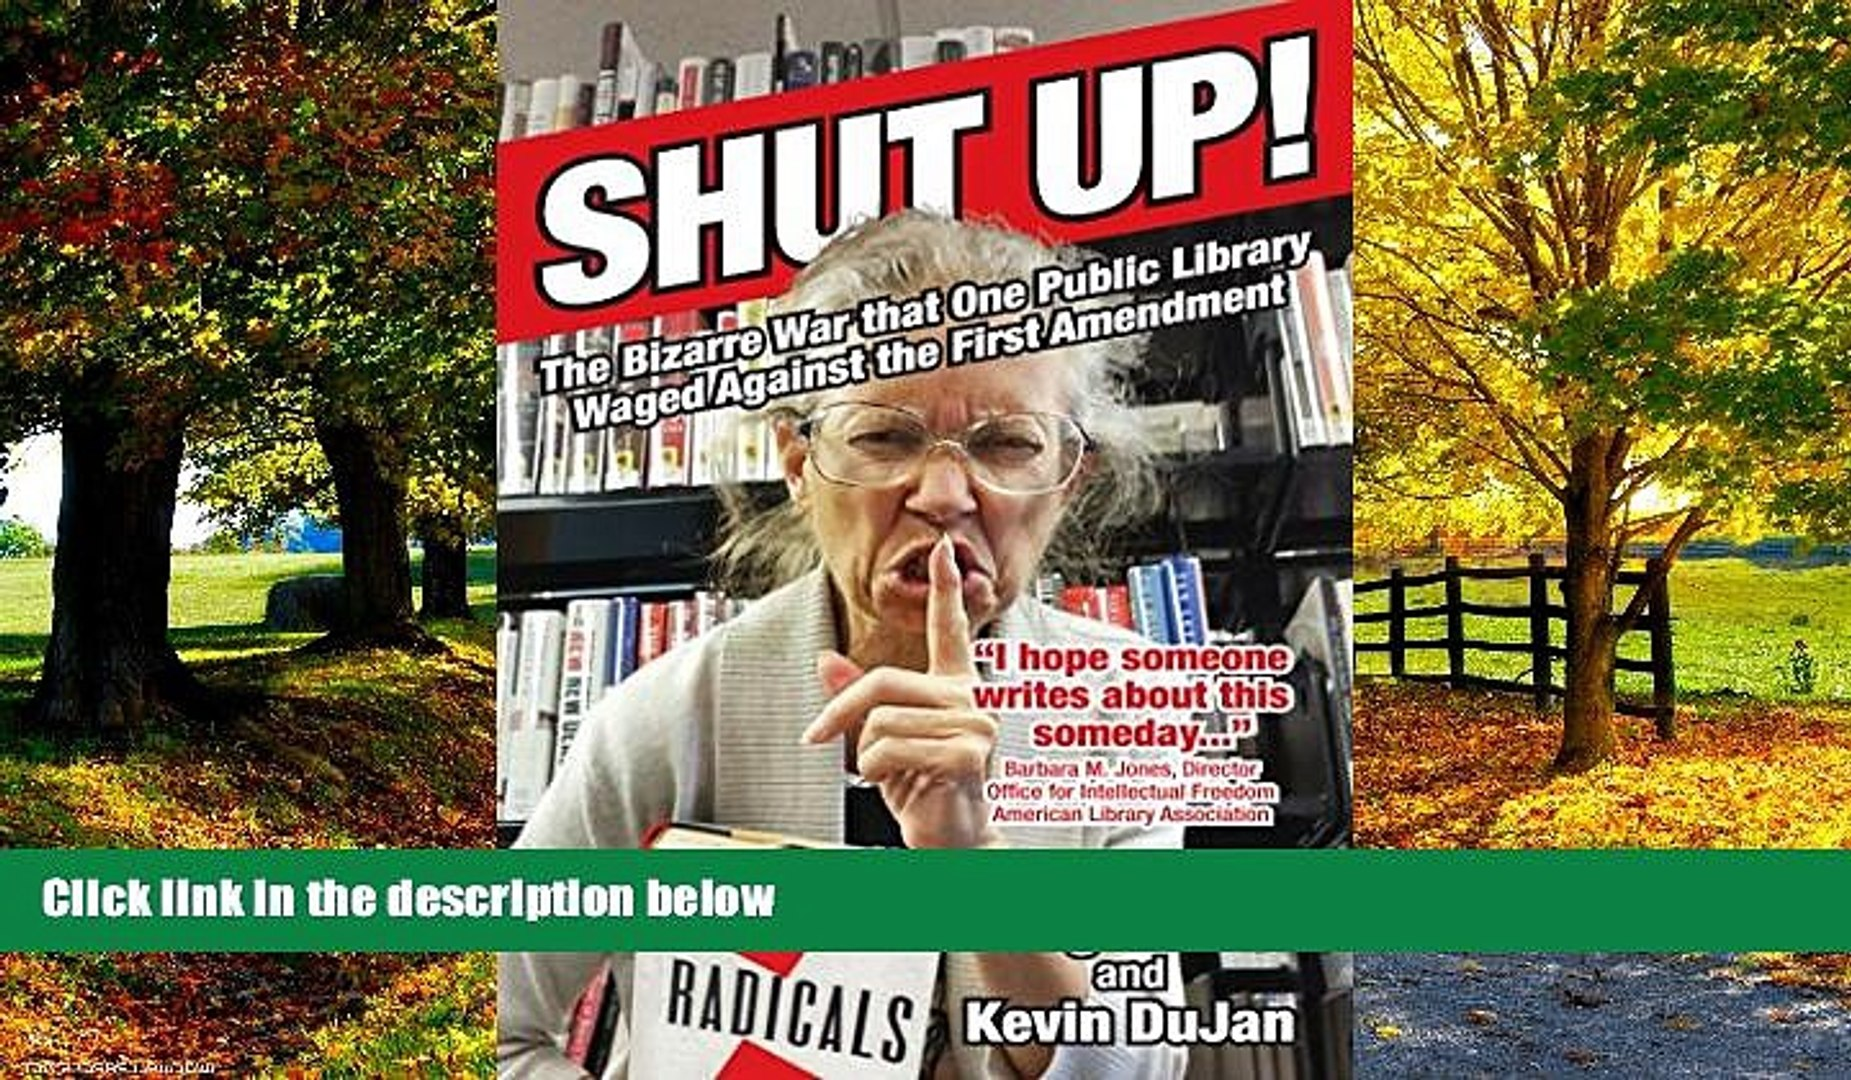 Books to Read  Shut Up!: The Bizarre War that One Public Library Waged Against the First